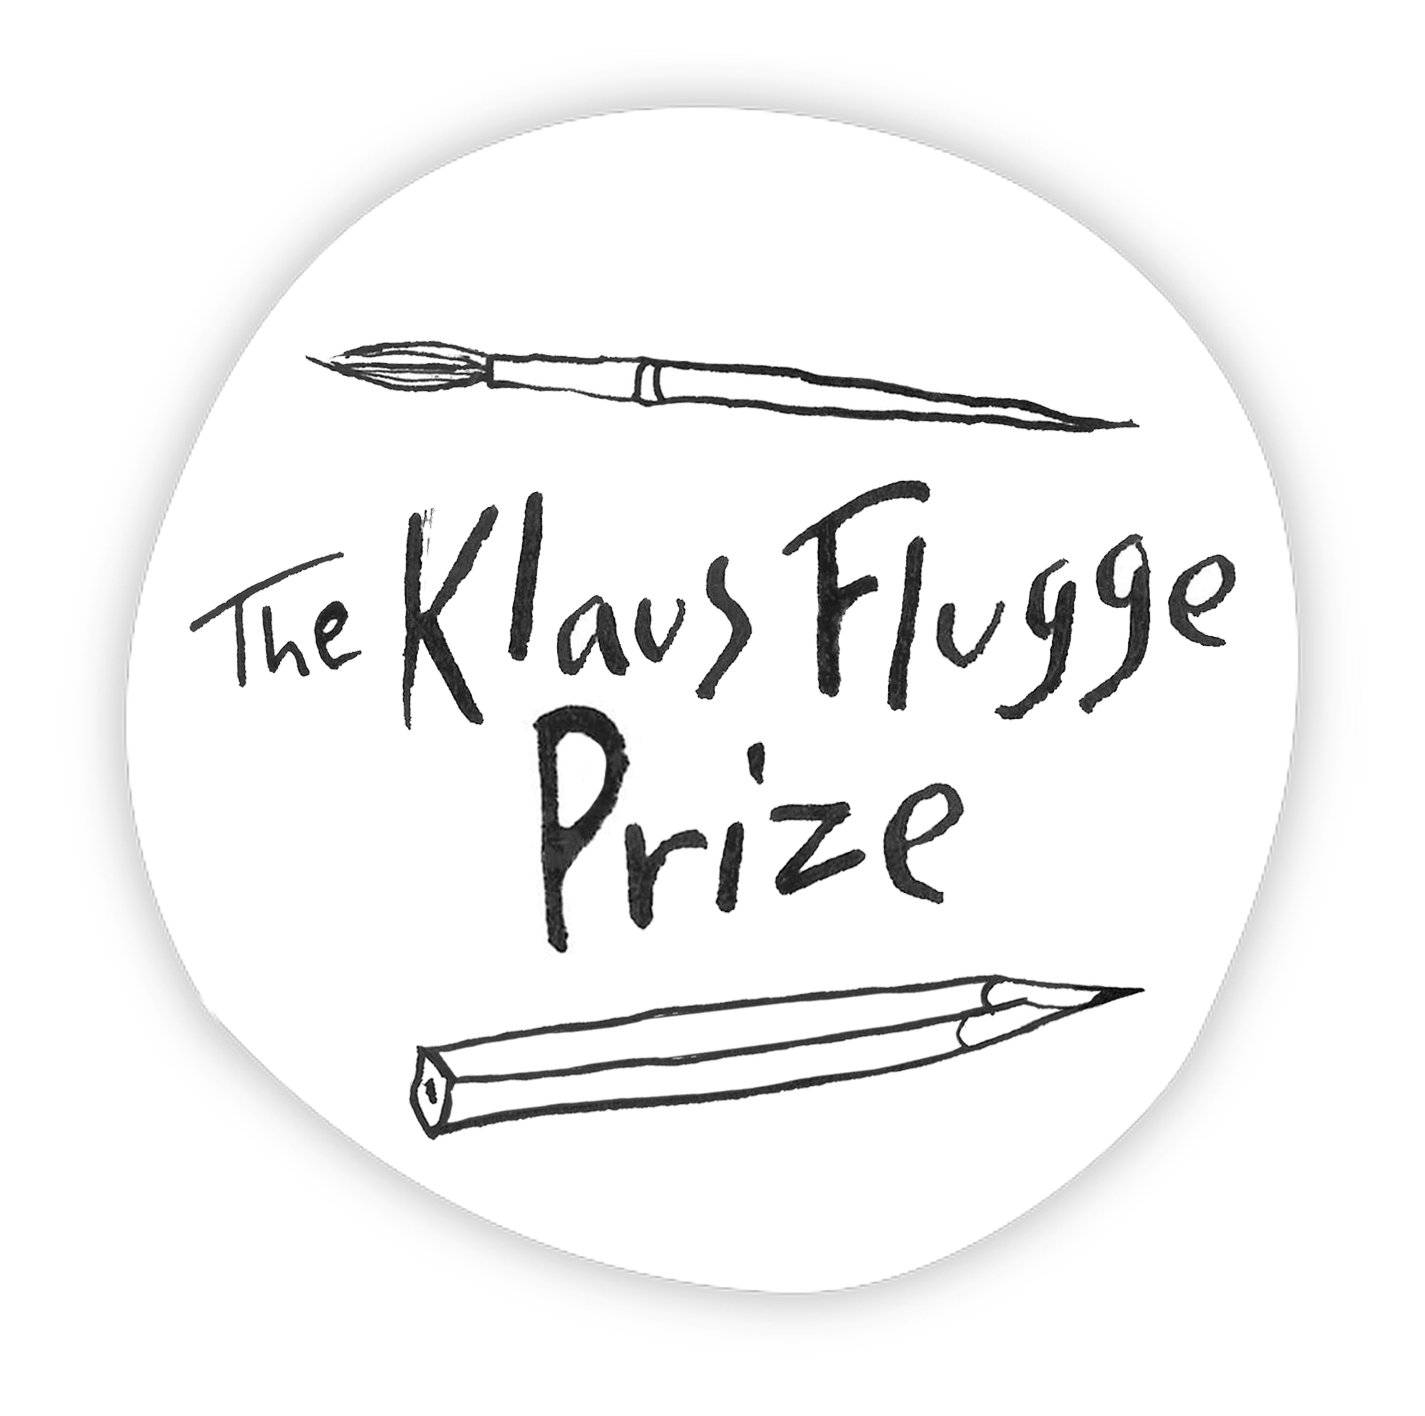 The Klaus Flugge Prize: putting illustrators in the picture